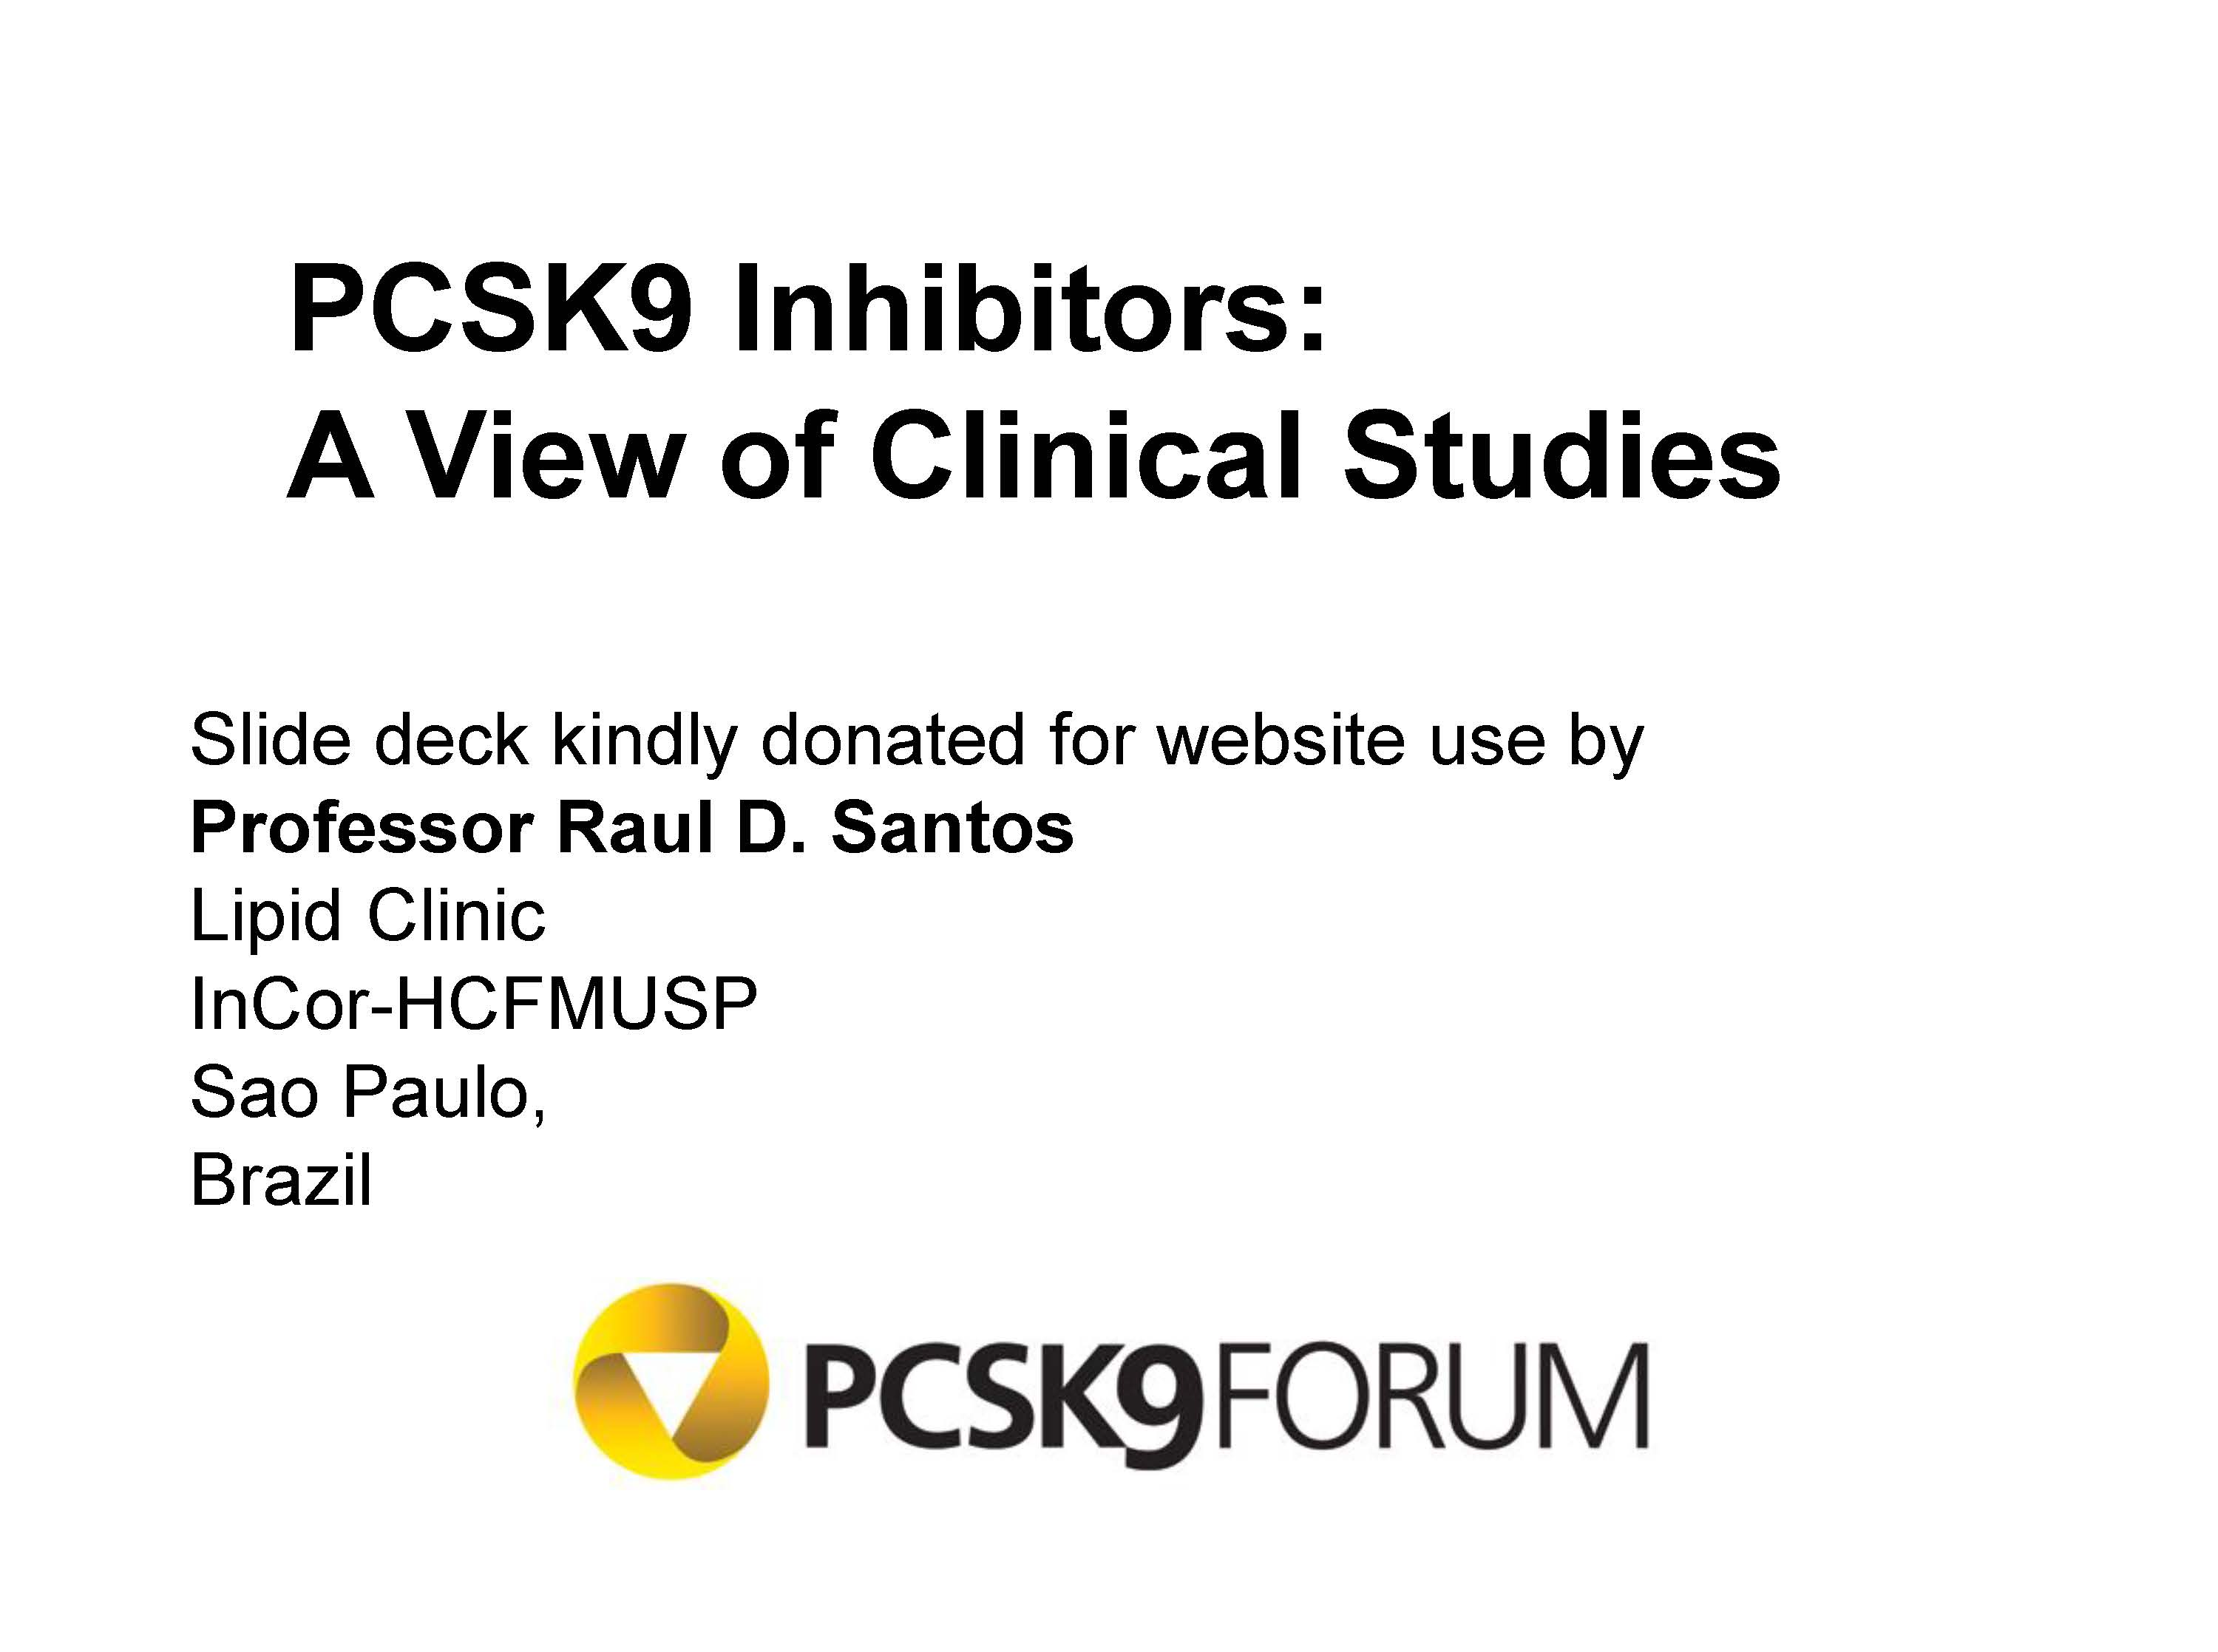 PCSK9 Inhibitors: A View of Clinical Studies